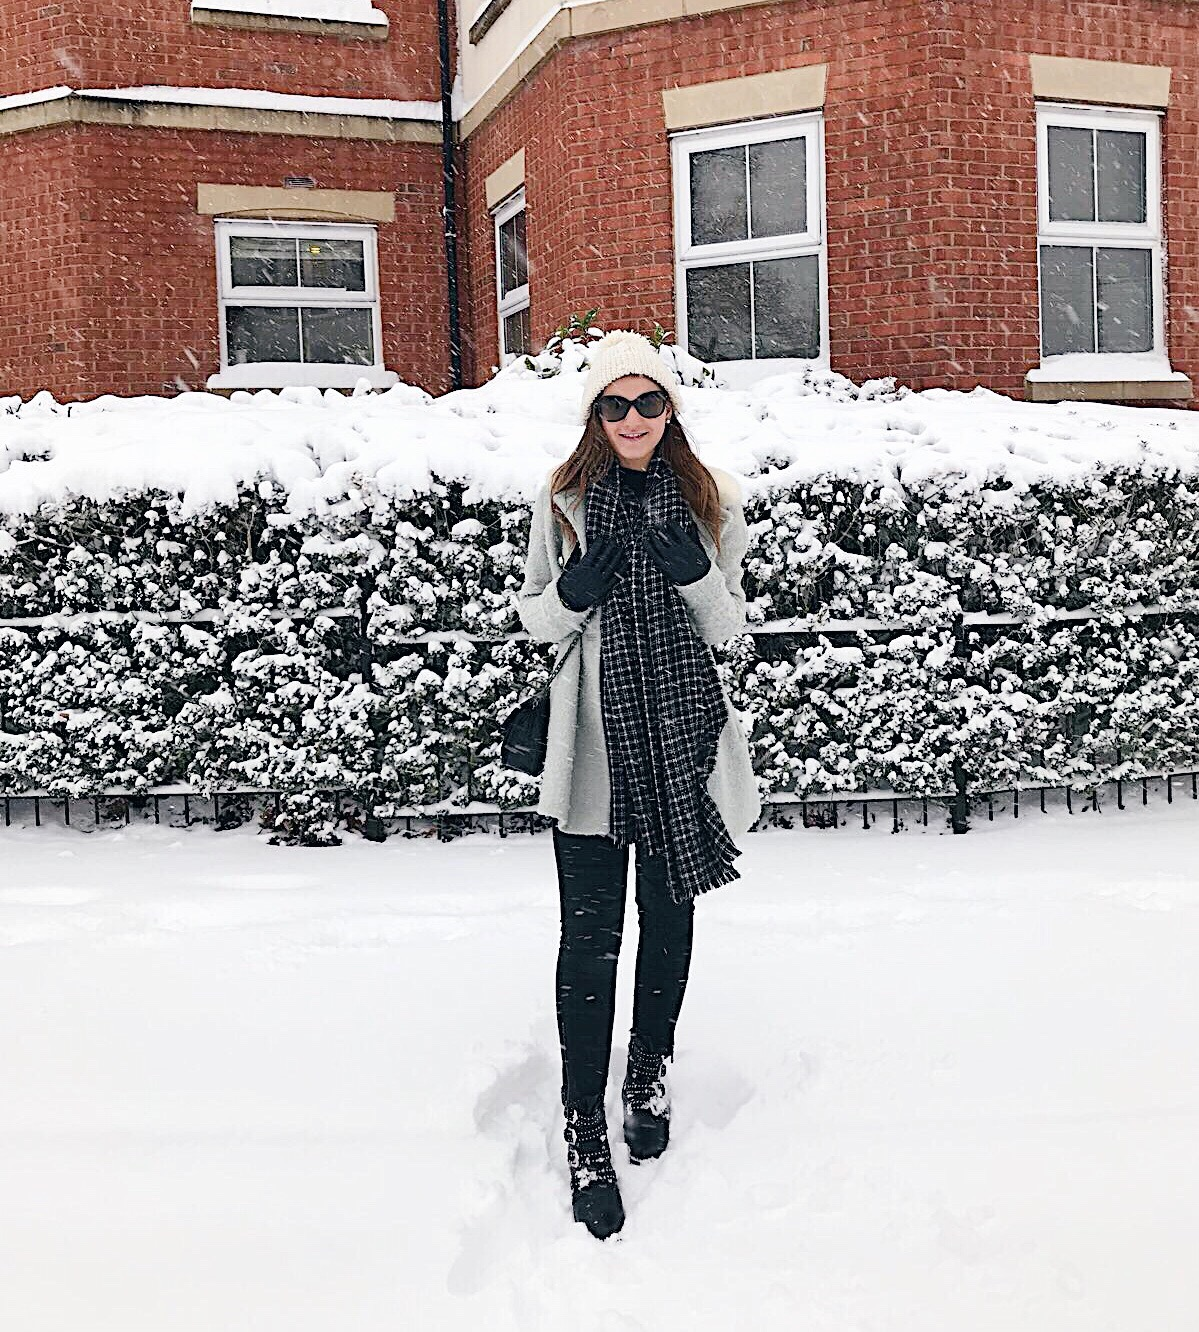 12 THINGS I AM LOVING THIS WINTER